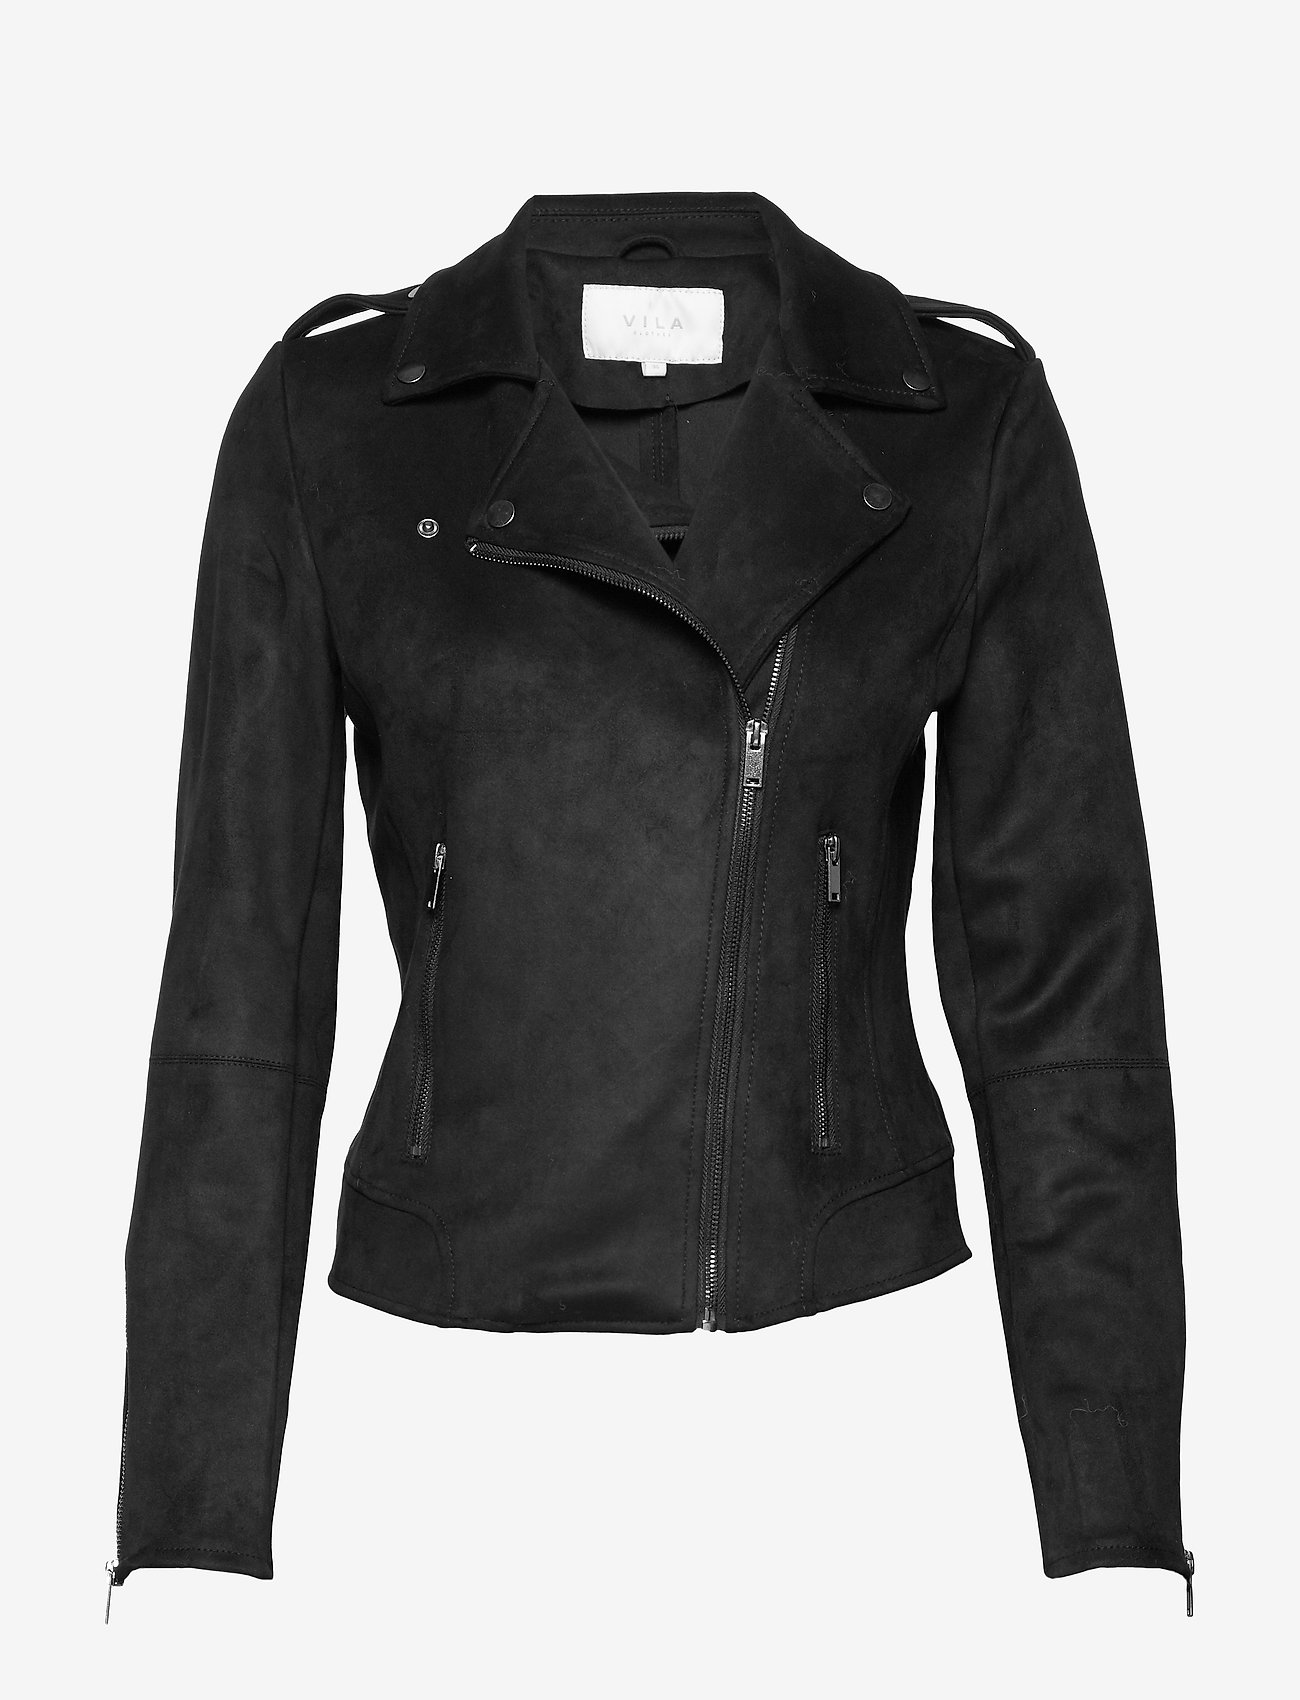 Vila - VIFADDY JACKET - NOOS - leather jackets - black - 0